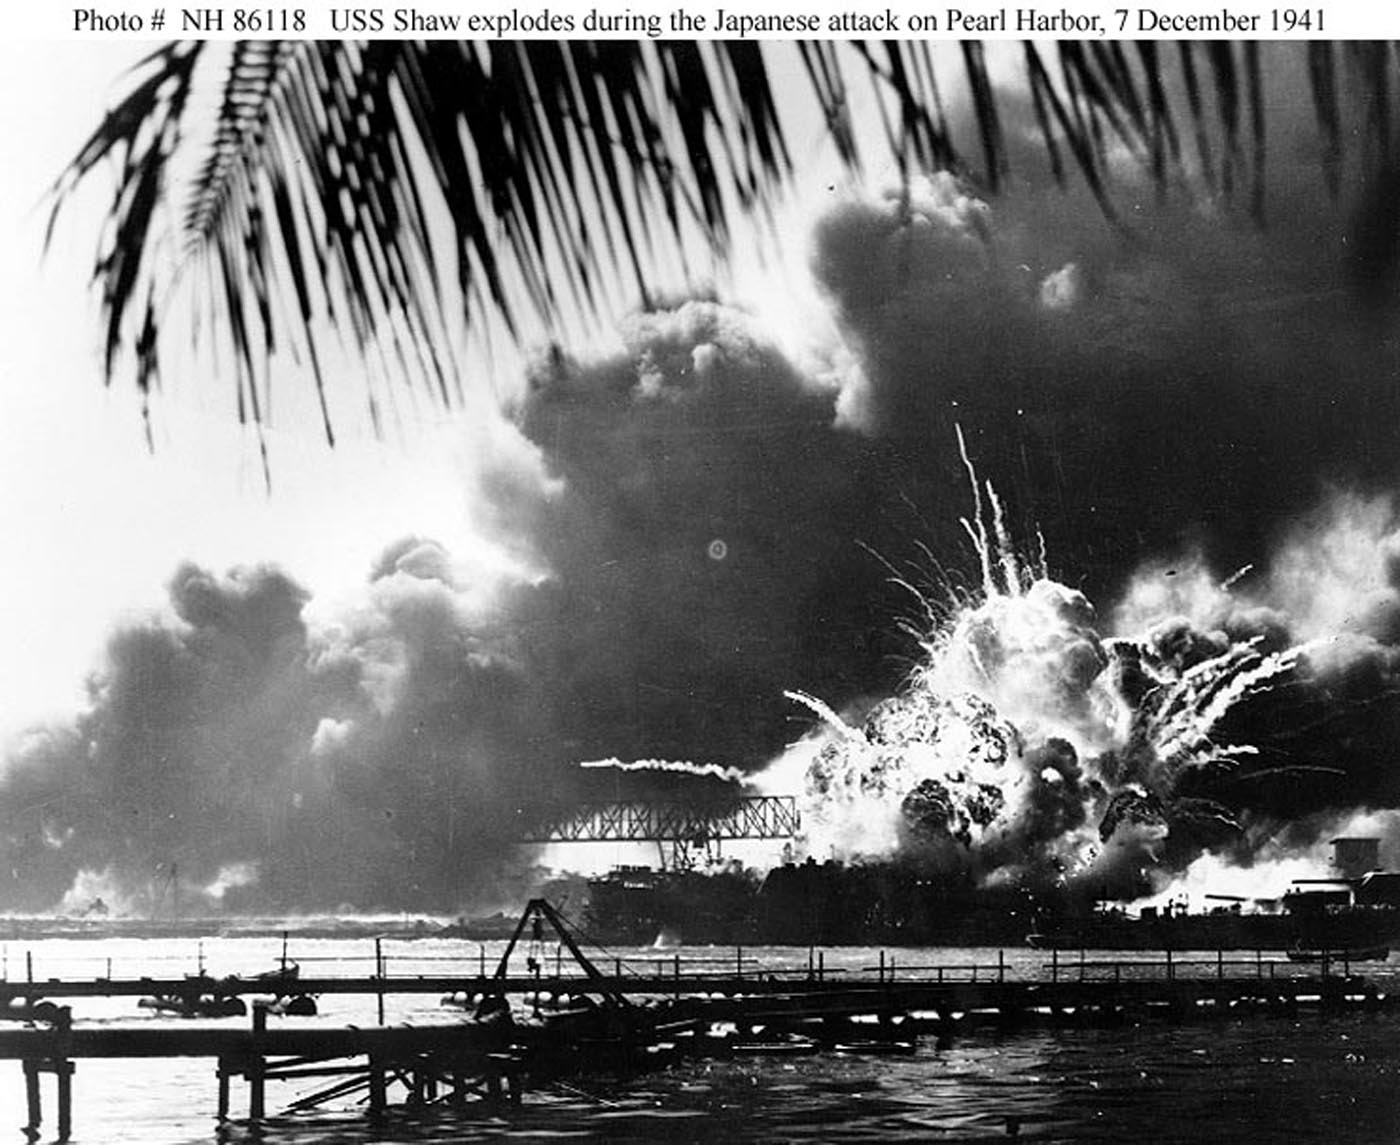 Archive USN photos showing the devastation caused by IJN attack on Perl Harbor Hawaii 7th Dec 1941 08